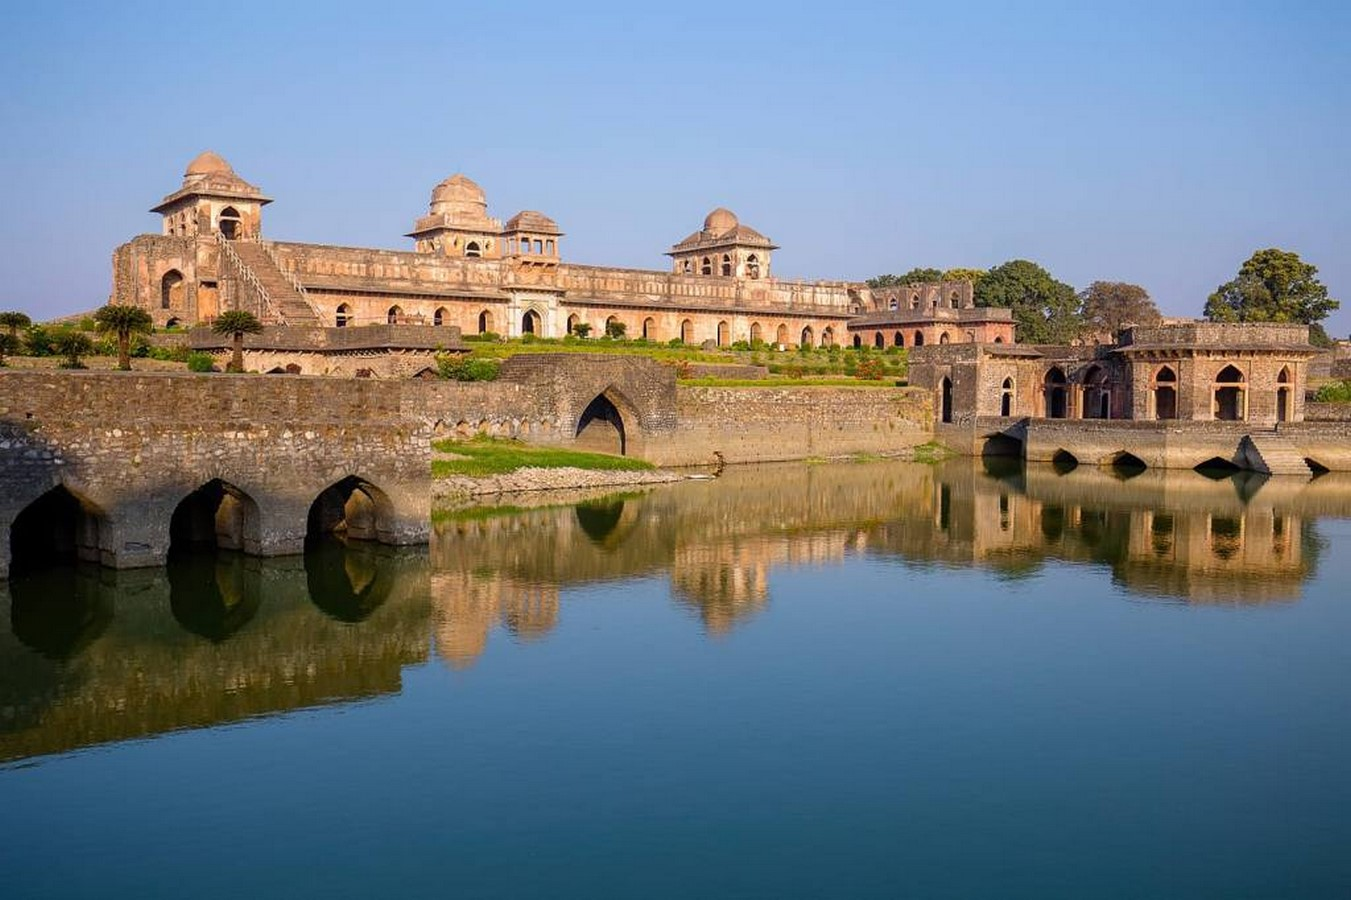 How water led to the evolution of architecture in ancient India - Sheet7